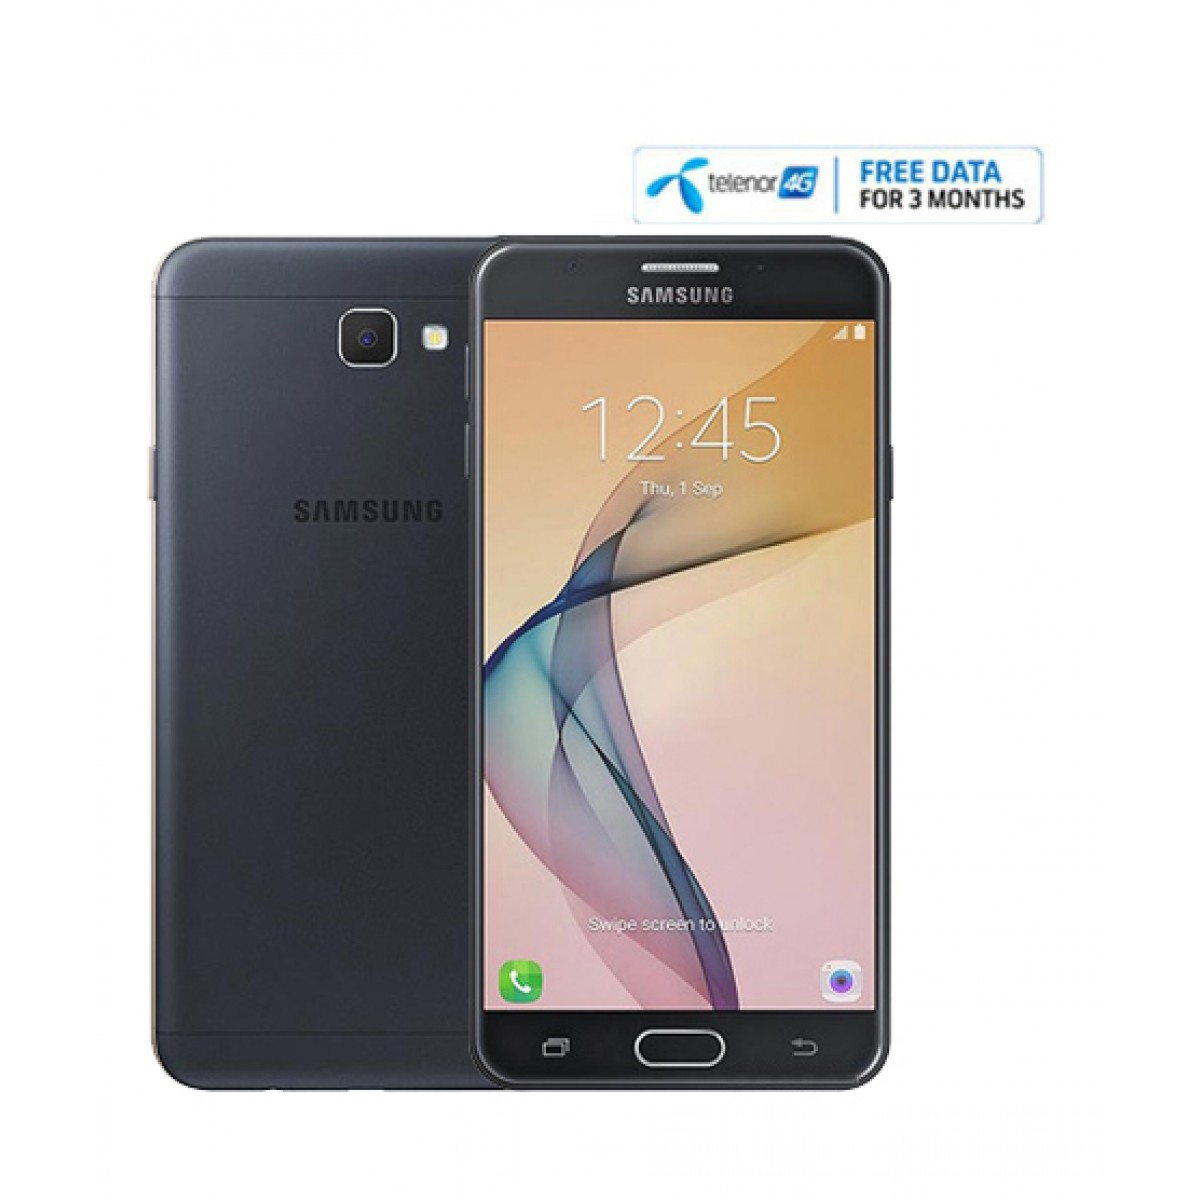 Samsung j7 prime 16gb gold price in india